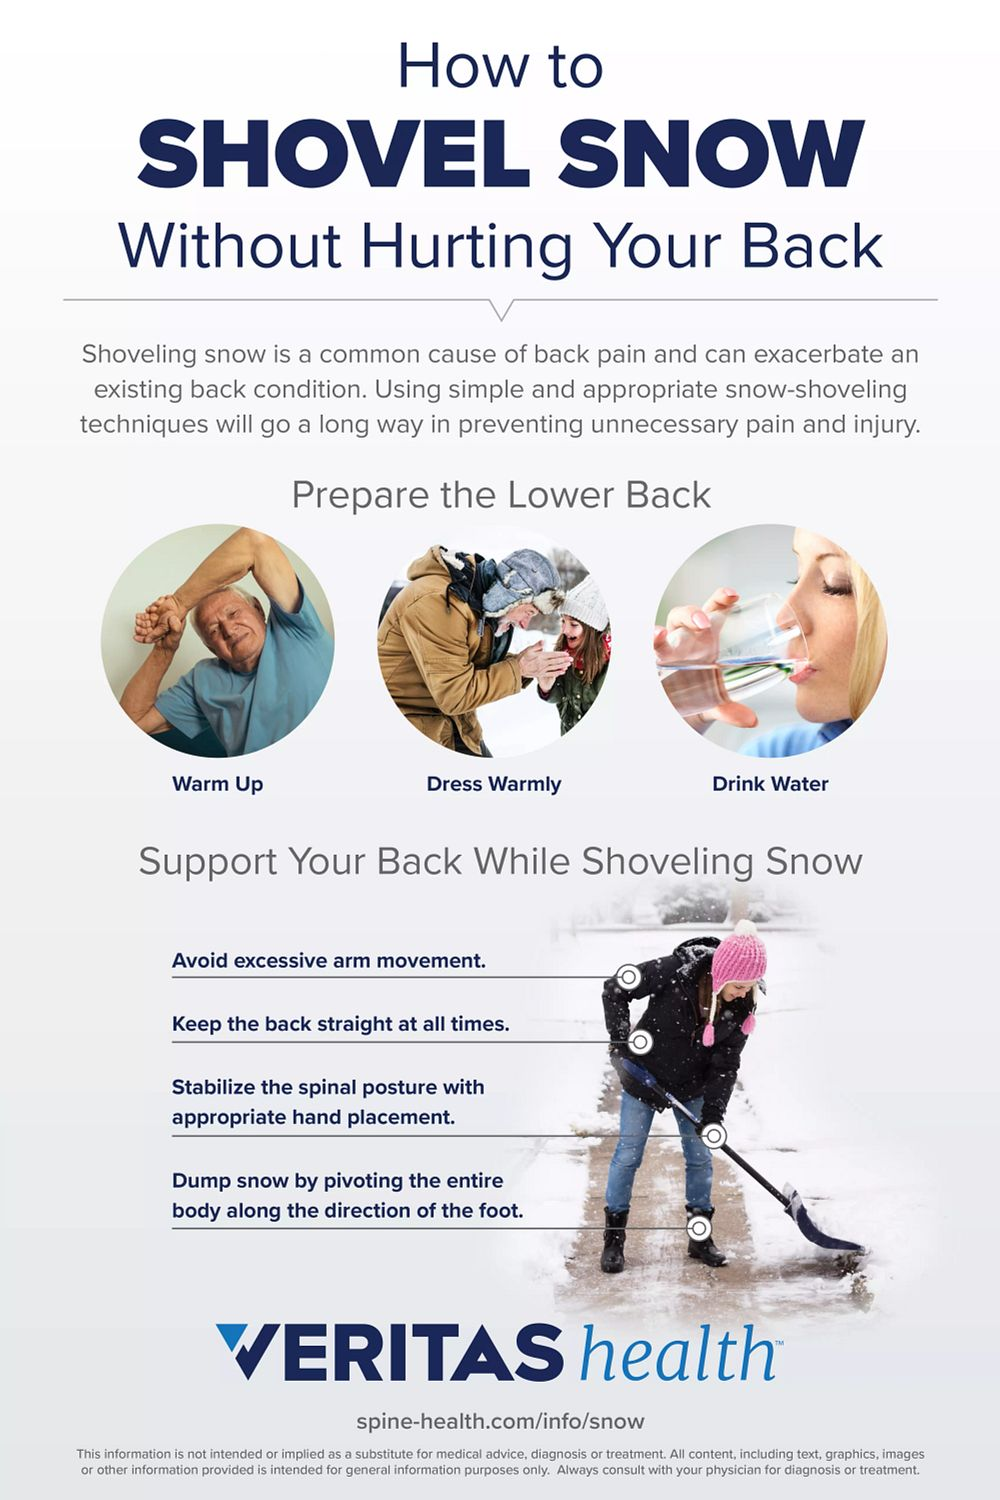 How to Shovel Snow Without Hurting Your Back